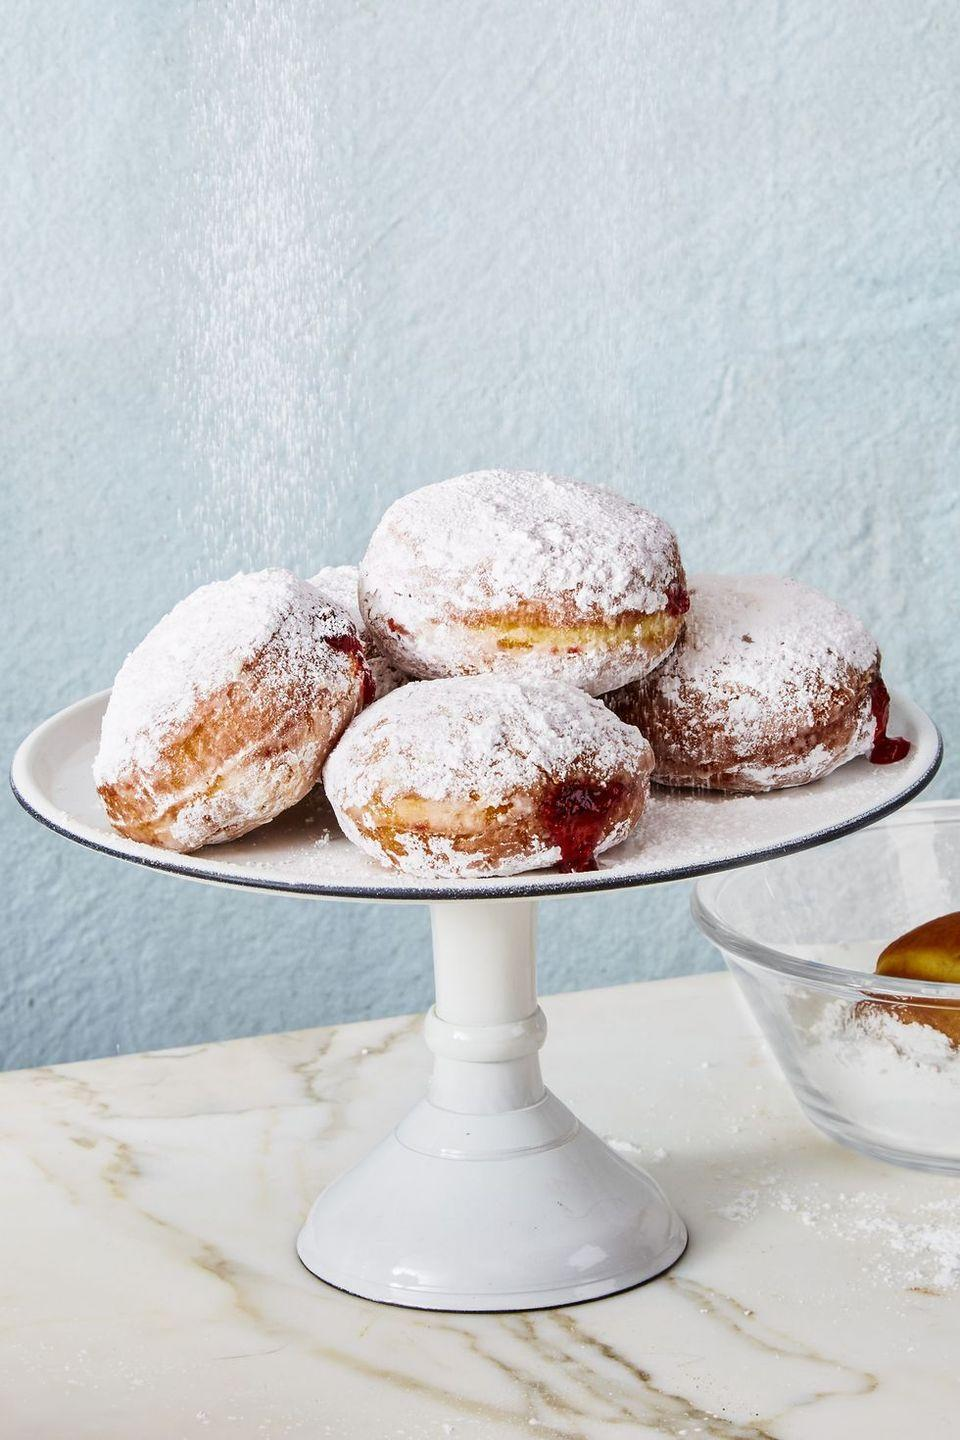 "<p>These filled donuts are the most traditional among Hanukkah desserts. They are typically filled with jelly or custard, and are light, airy, and positively addictive. This recipe uses raspberry or strawberry jam for a classic filling, and is rolled in confectioners sugar for a tempting presentation.</p><p><em><a href=""https://www.goodhousekeeping.com/food-recipes/a48180/classic-jelly-donuts-recipe/"" rel=""nofollow noopener"" target=""_blank"" data-ylk=""slk:Get the recipe for jelly donuts"" class=""link rapid-noclick-resp"">Get the recipe for jelly donuts</a></em></p>"